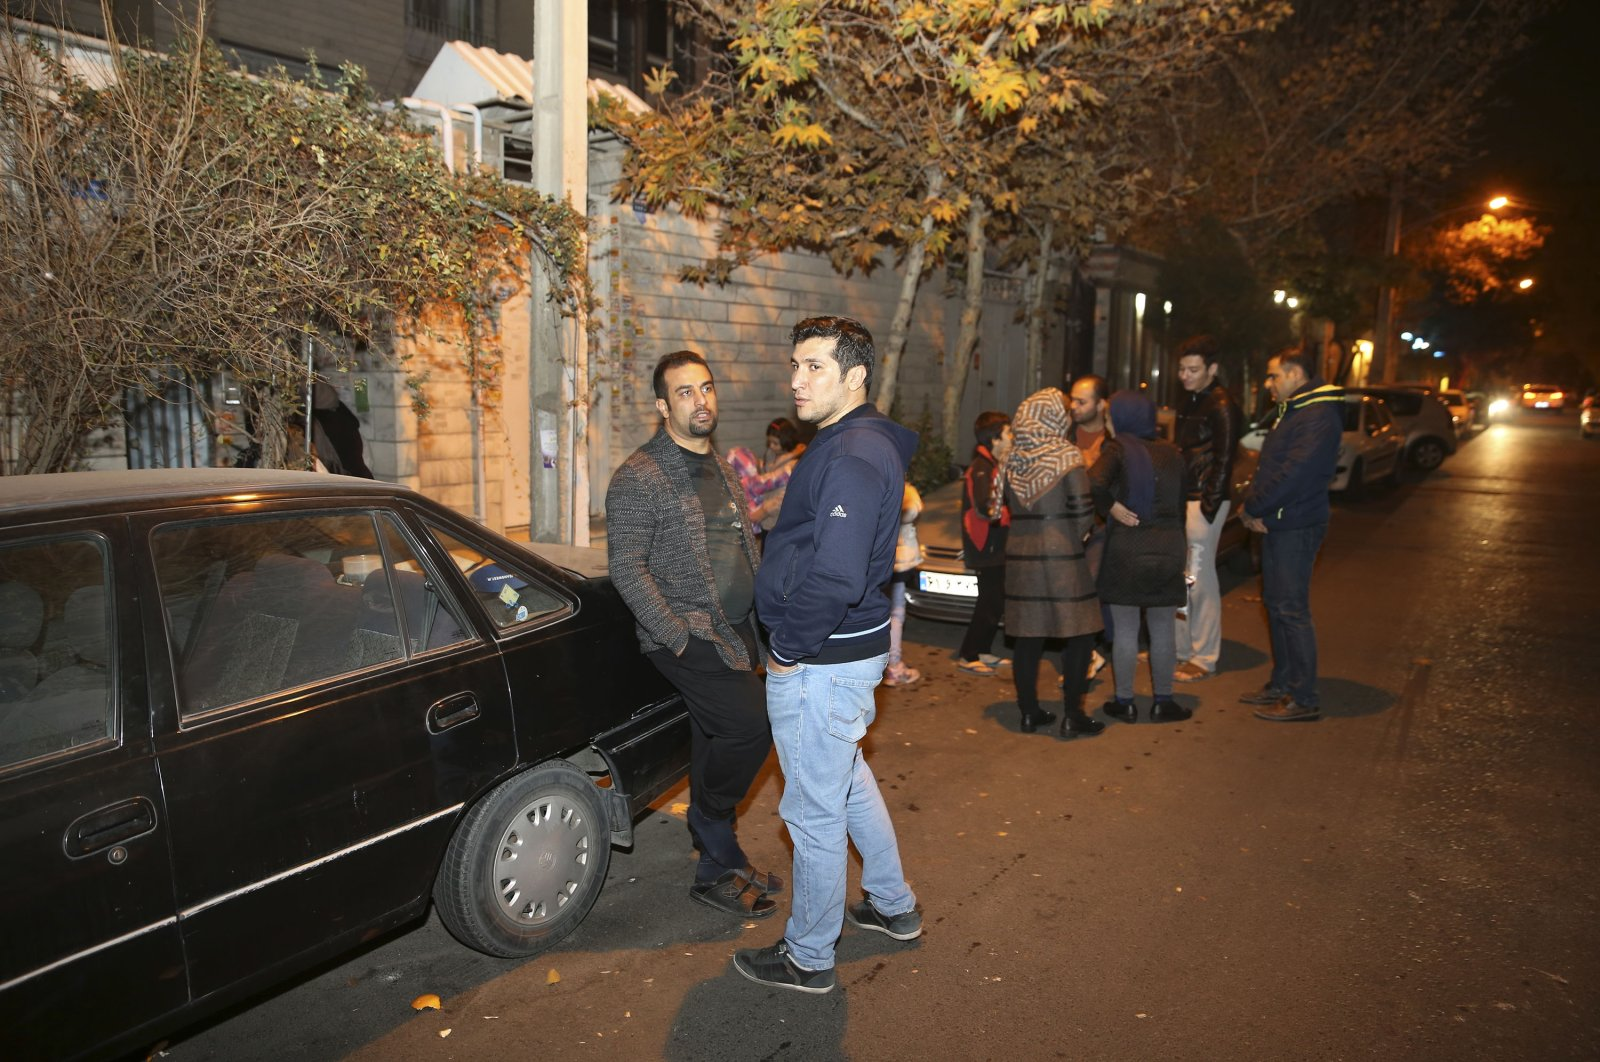 People stand outside their houses in Tehran after a late-night magnitude 5.2 earthquake jolted a town near Iran's capital, Dec. 21, 2017. (AP Photo)